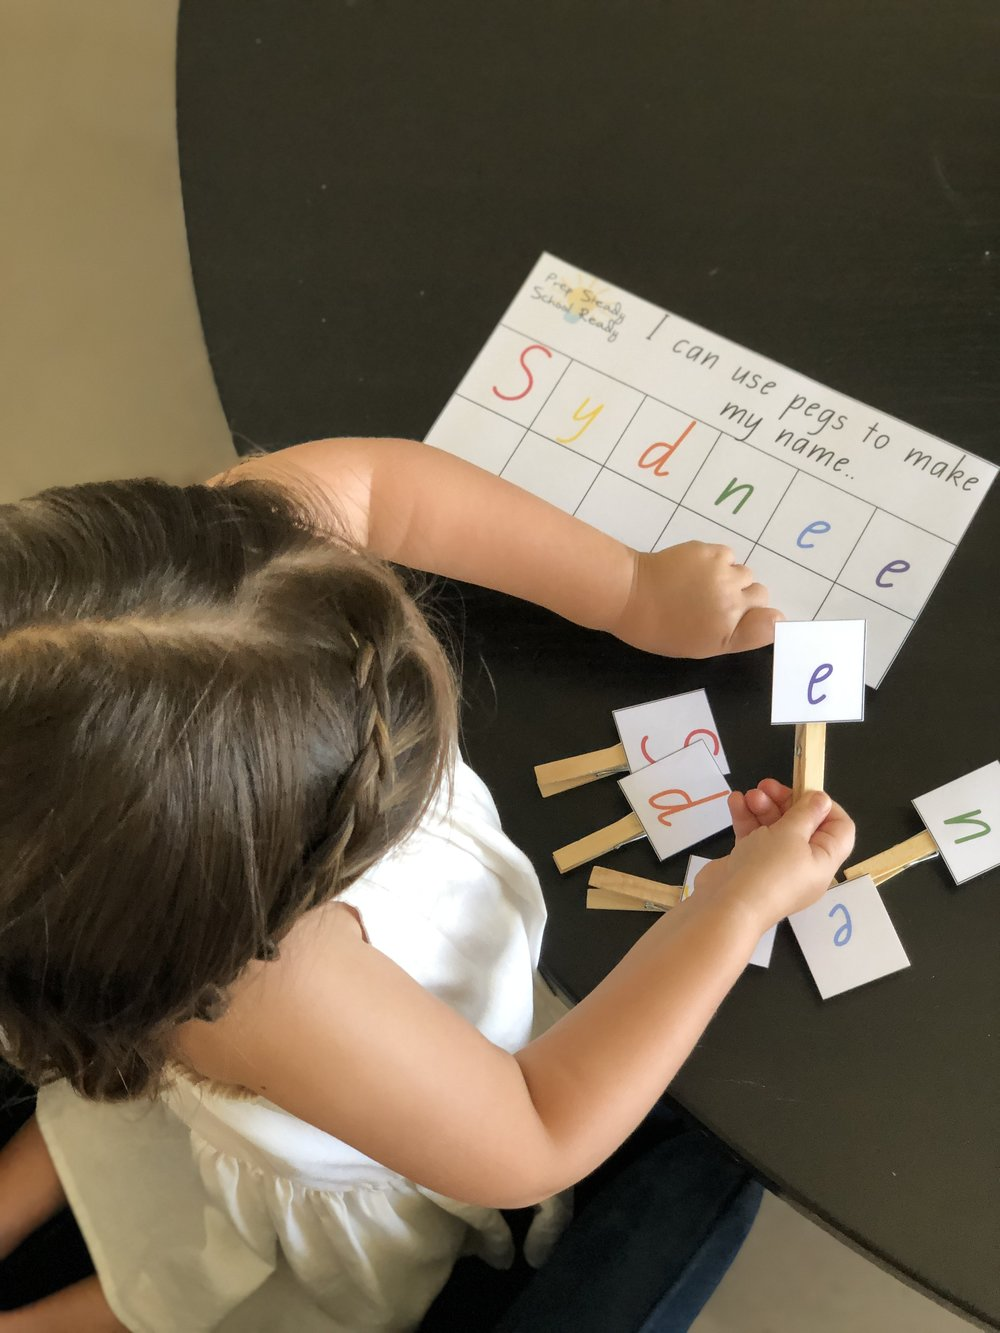 Learning the letters in her name in a fun way.